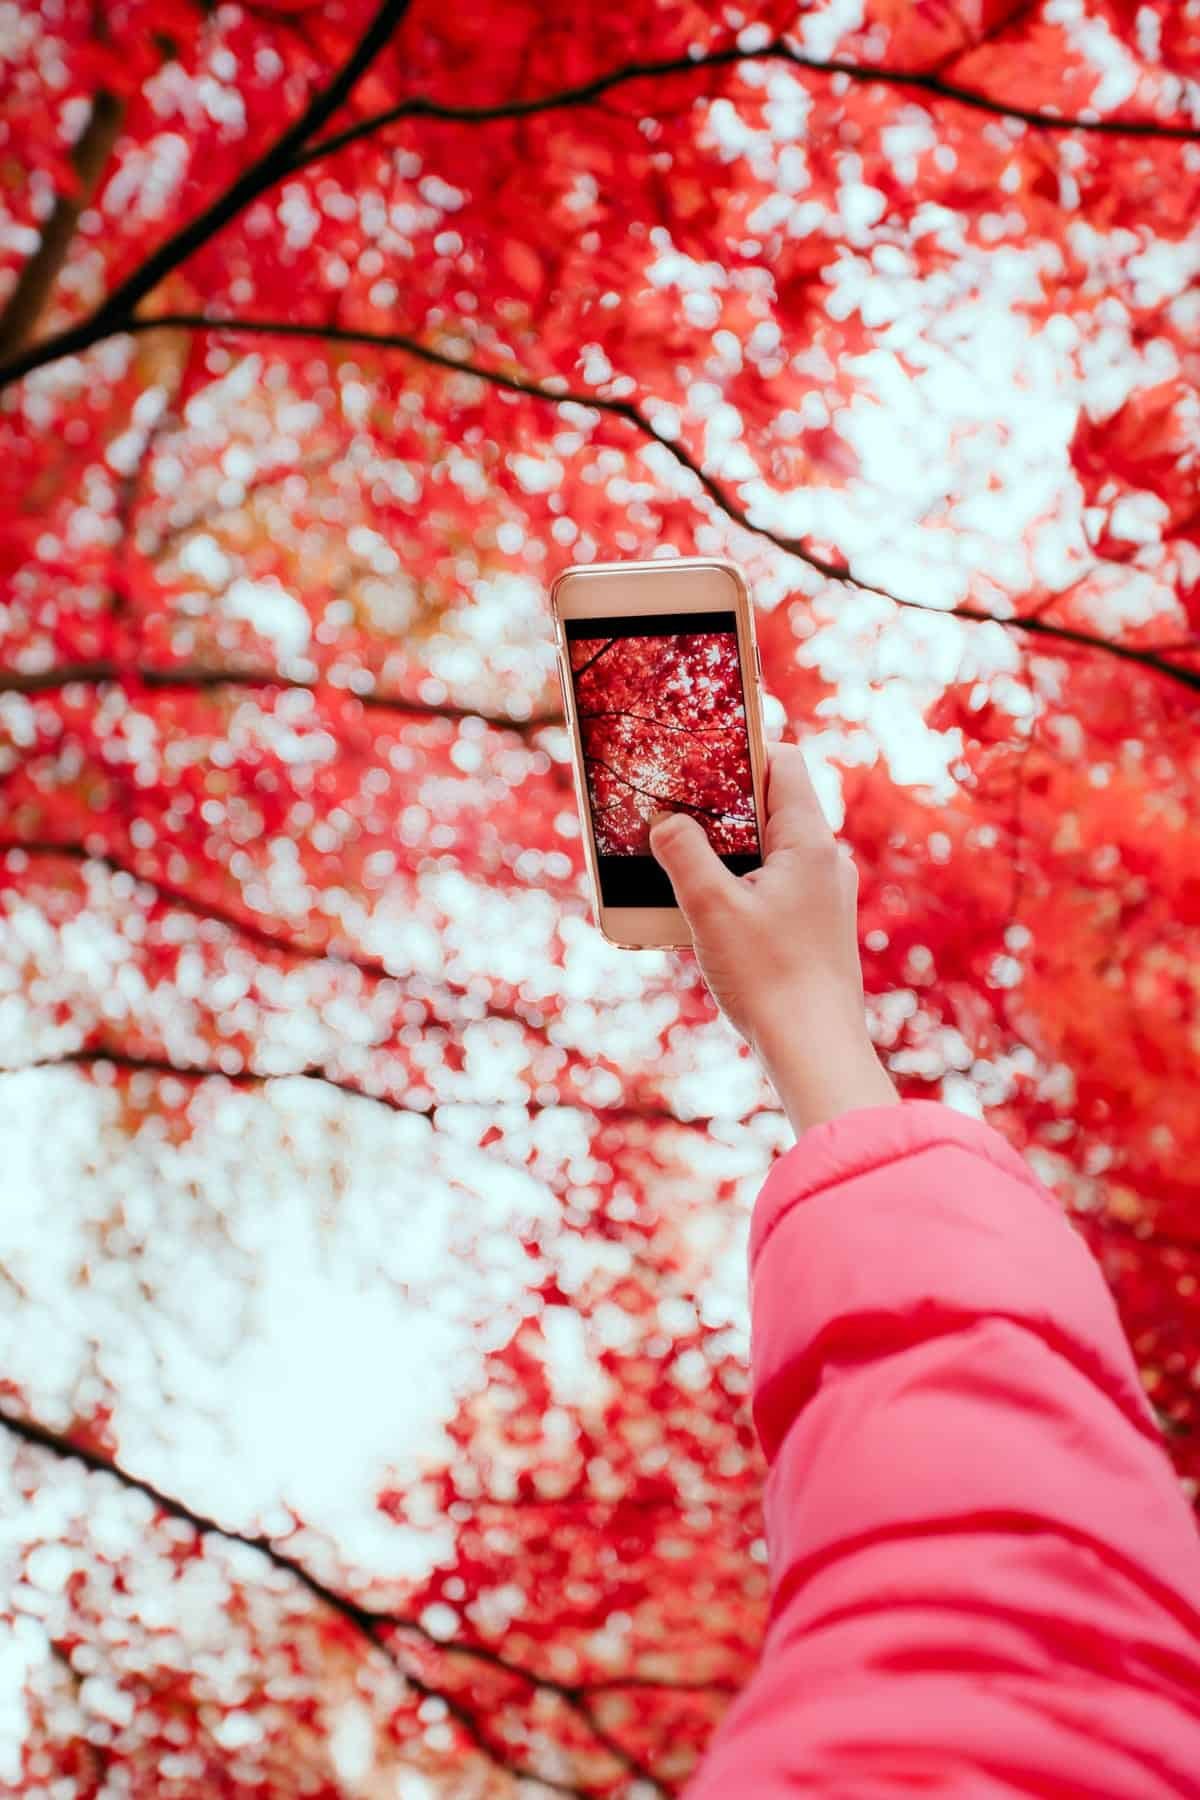 A photo of a person holding up their phone to take a picture of red leaves on a tree.